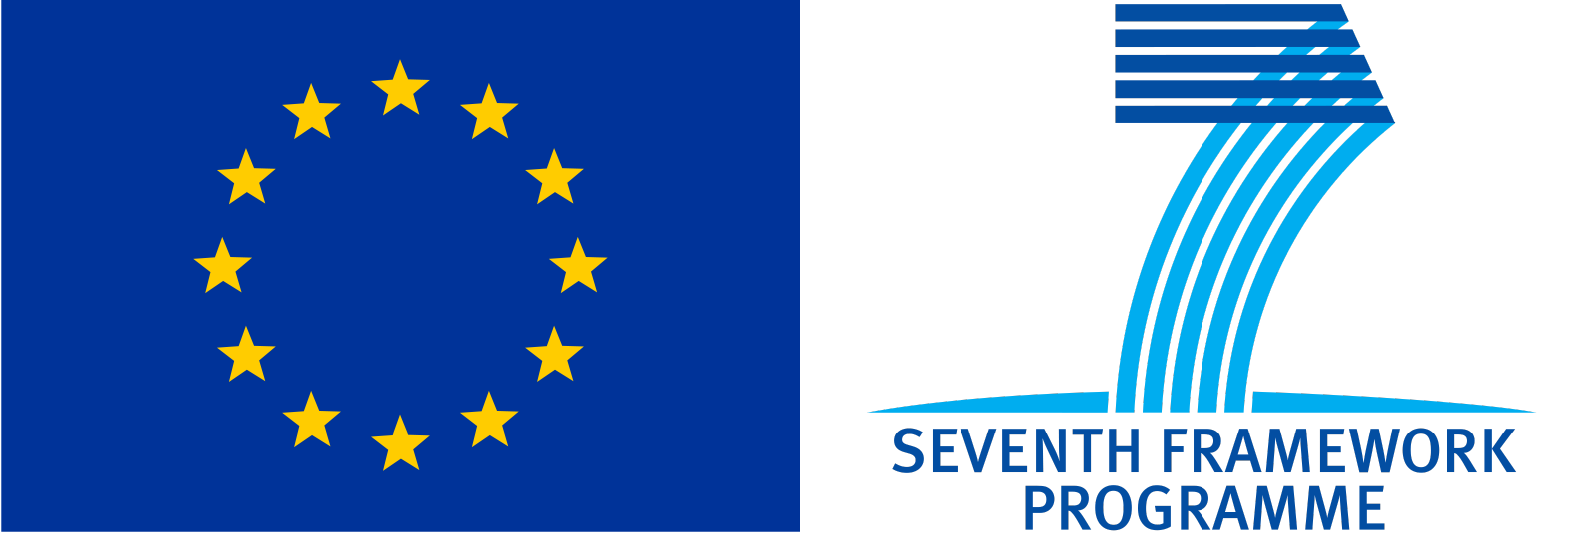 European Union and FP7 logos